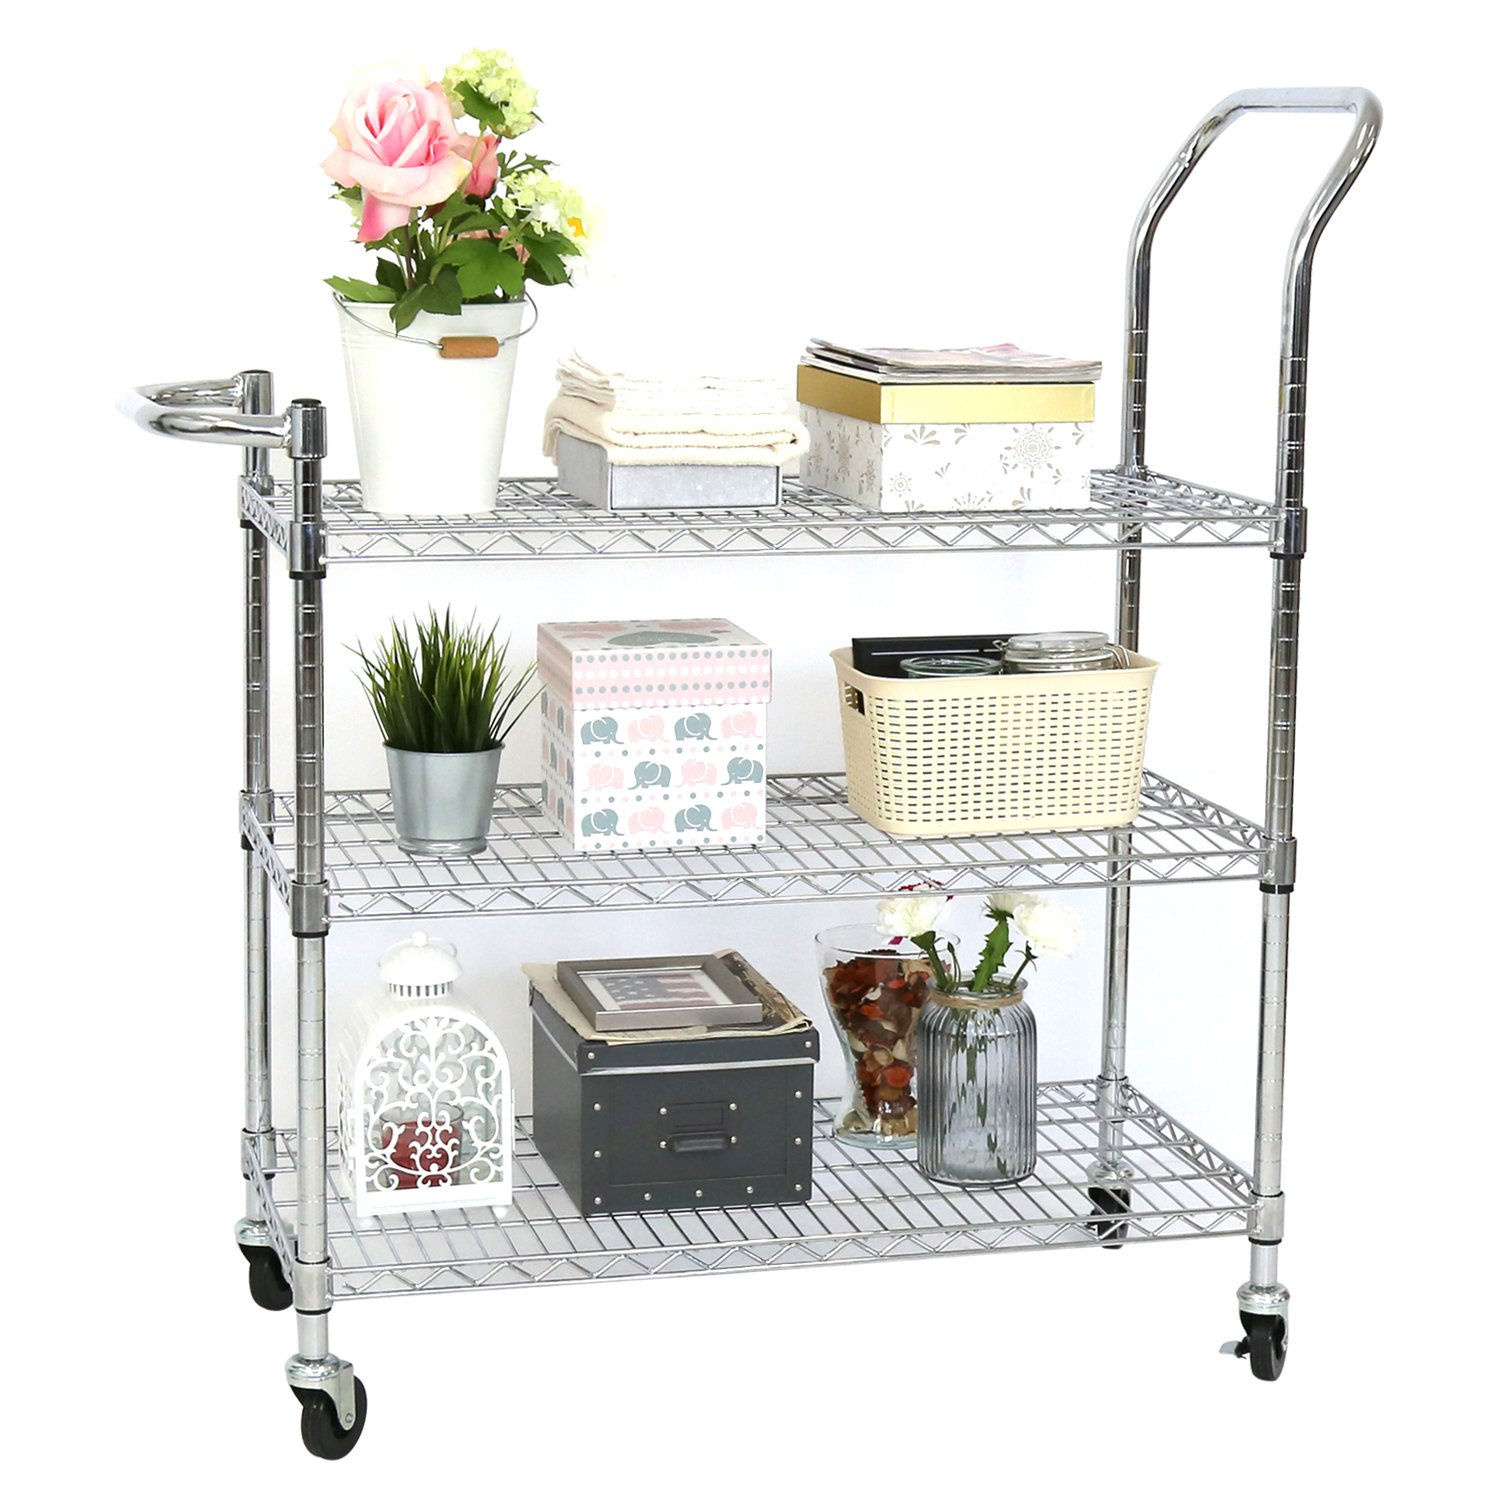 Kinbor 3 Tier Chrome Rolling Shelving Rack Metal Wire Cart Adjustable Shelf, w/Handles